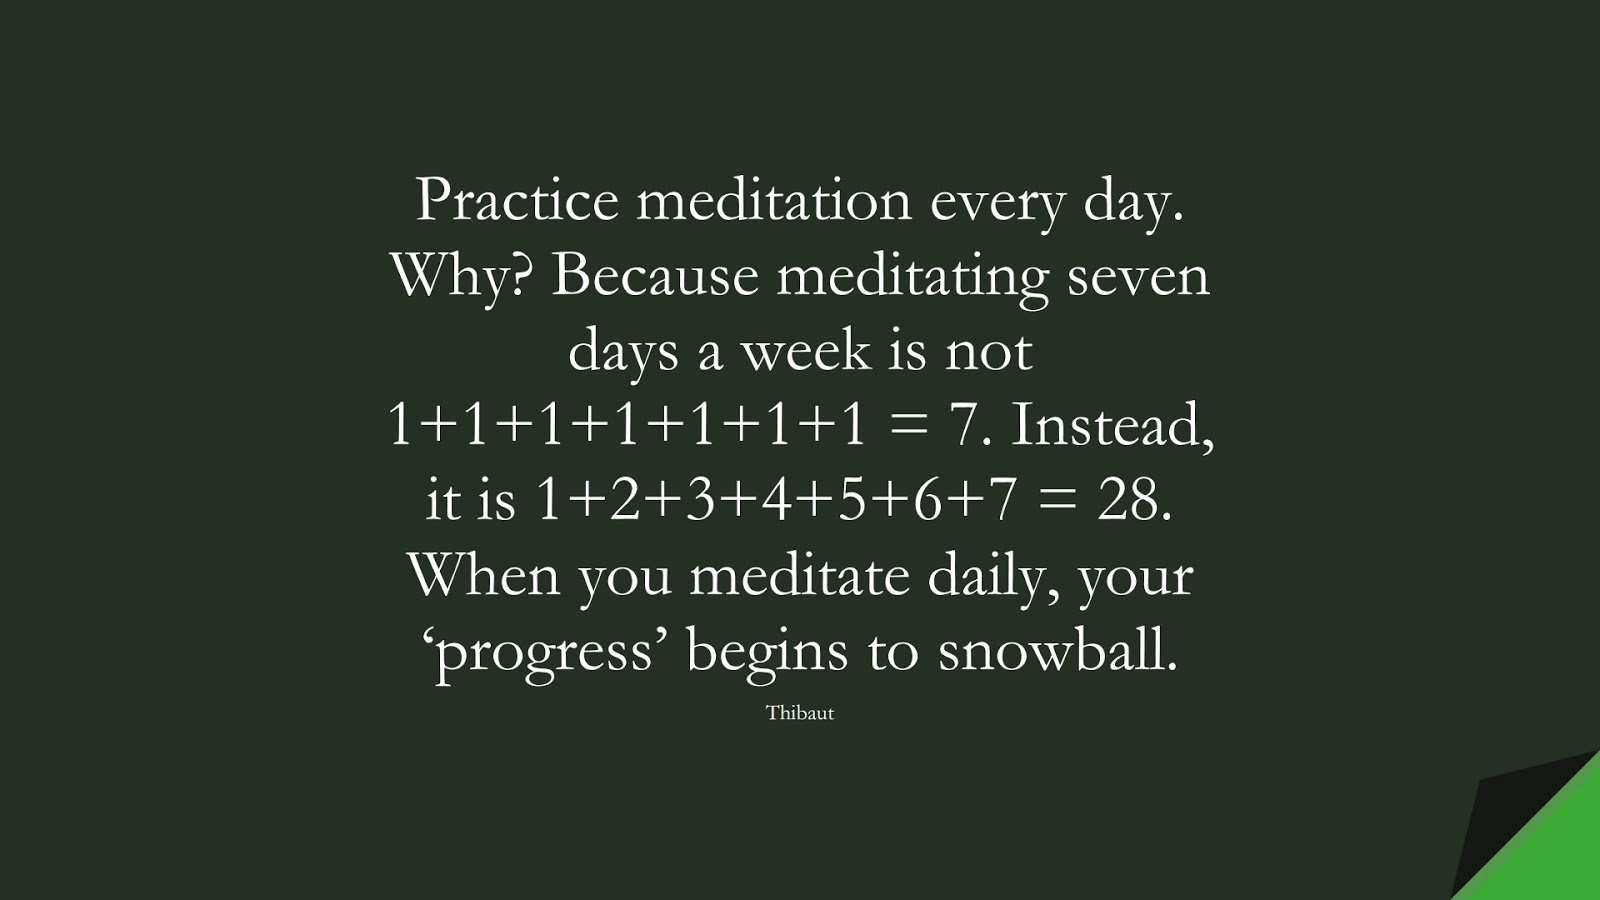 Practice meditation every day. Why? Because meditating seven days a week is not 1+1+1+1+1+1+1 = 7. Instead, it is 1+2+3+4+5+6+7 = 28. When you meditate daily, your 'progress' begins to snowball. (Thibaut);  #StressQuotes